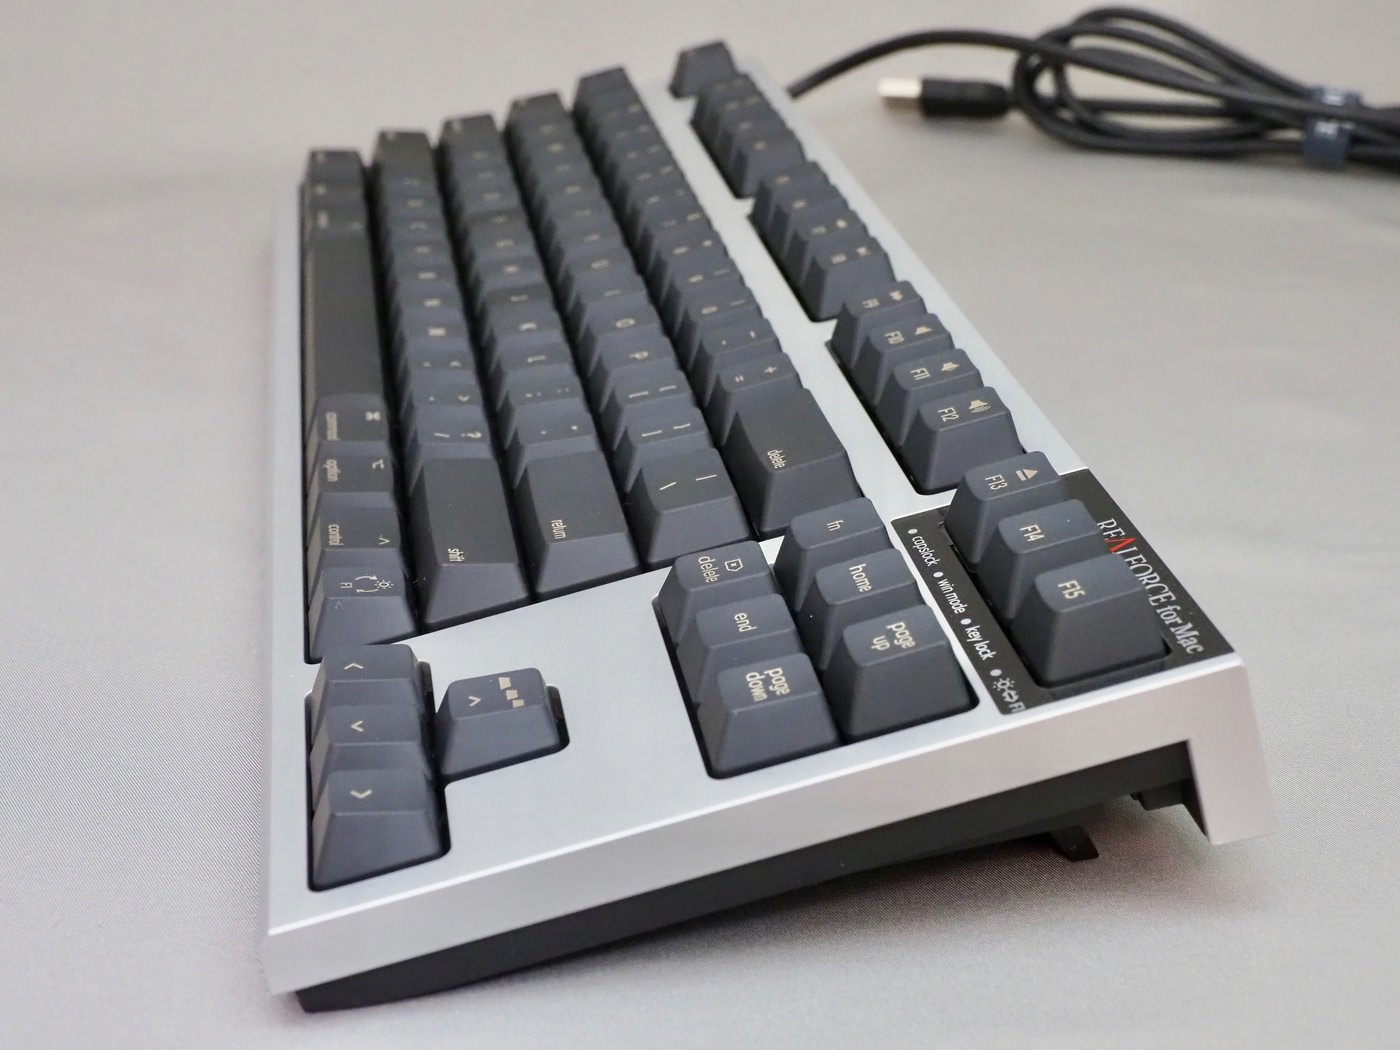 realforce-tkl-for-mac-pfu-limited-edition-review_00030